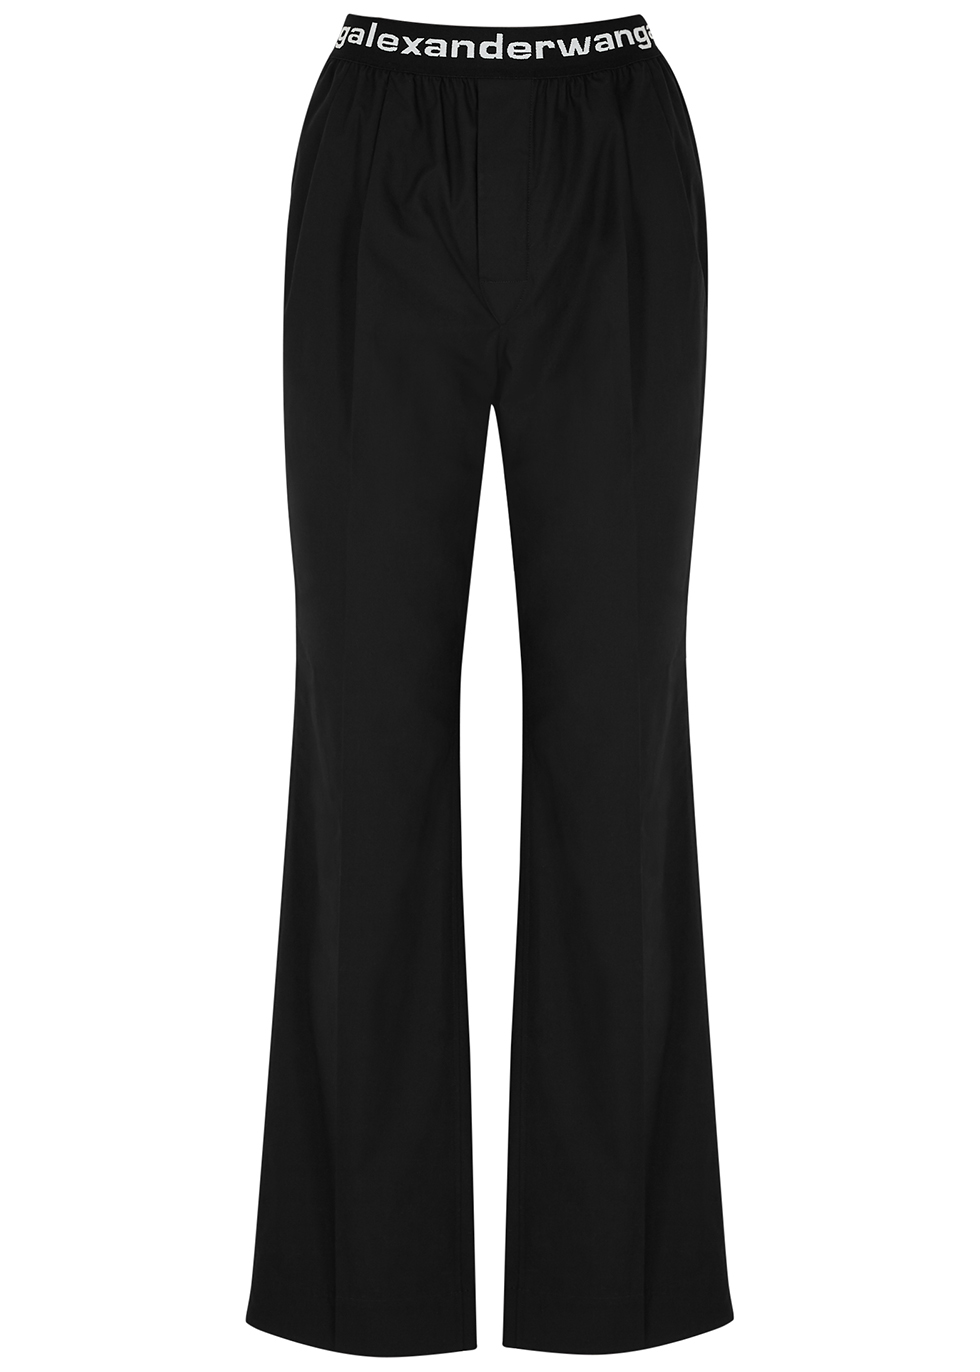 Black logo cotton trousers